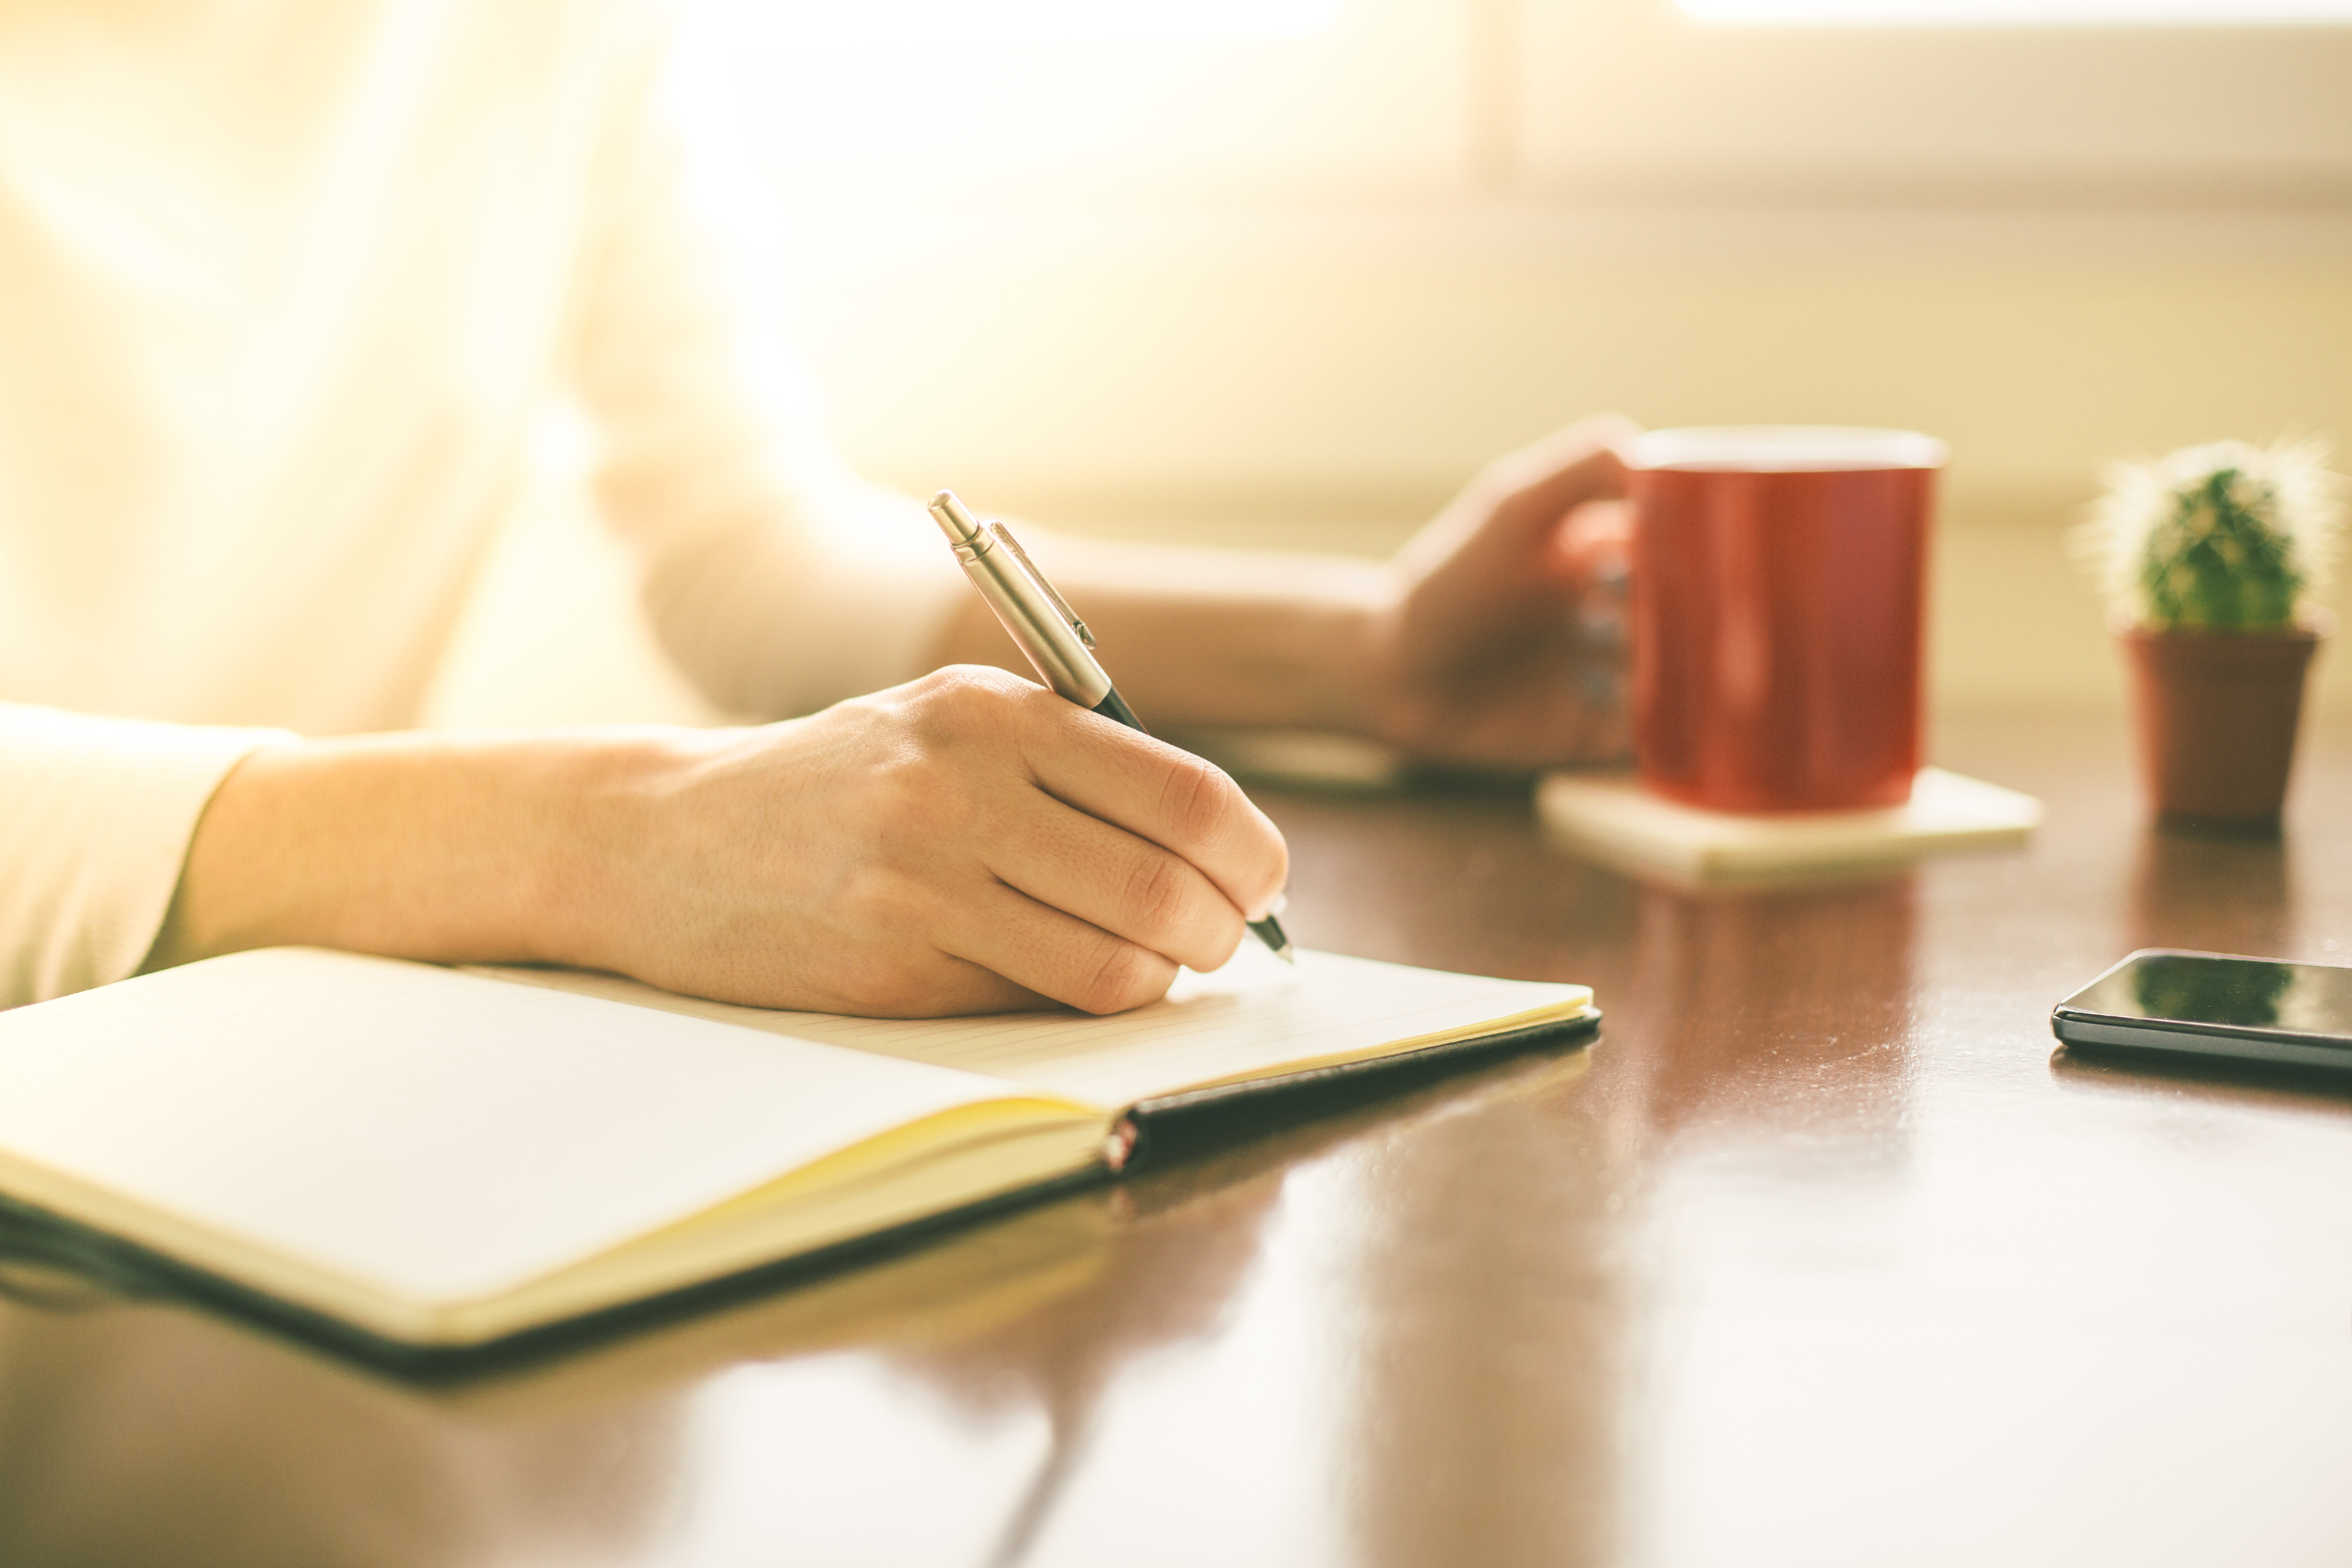 Female hands writing on notebook